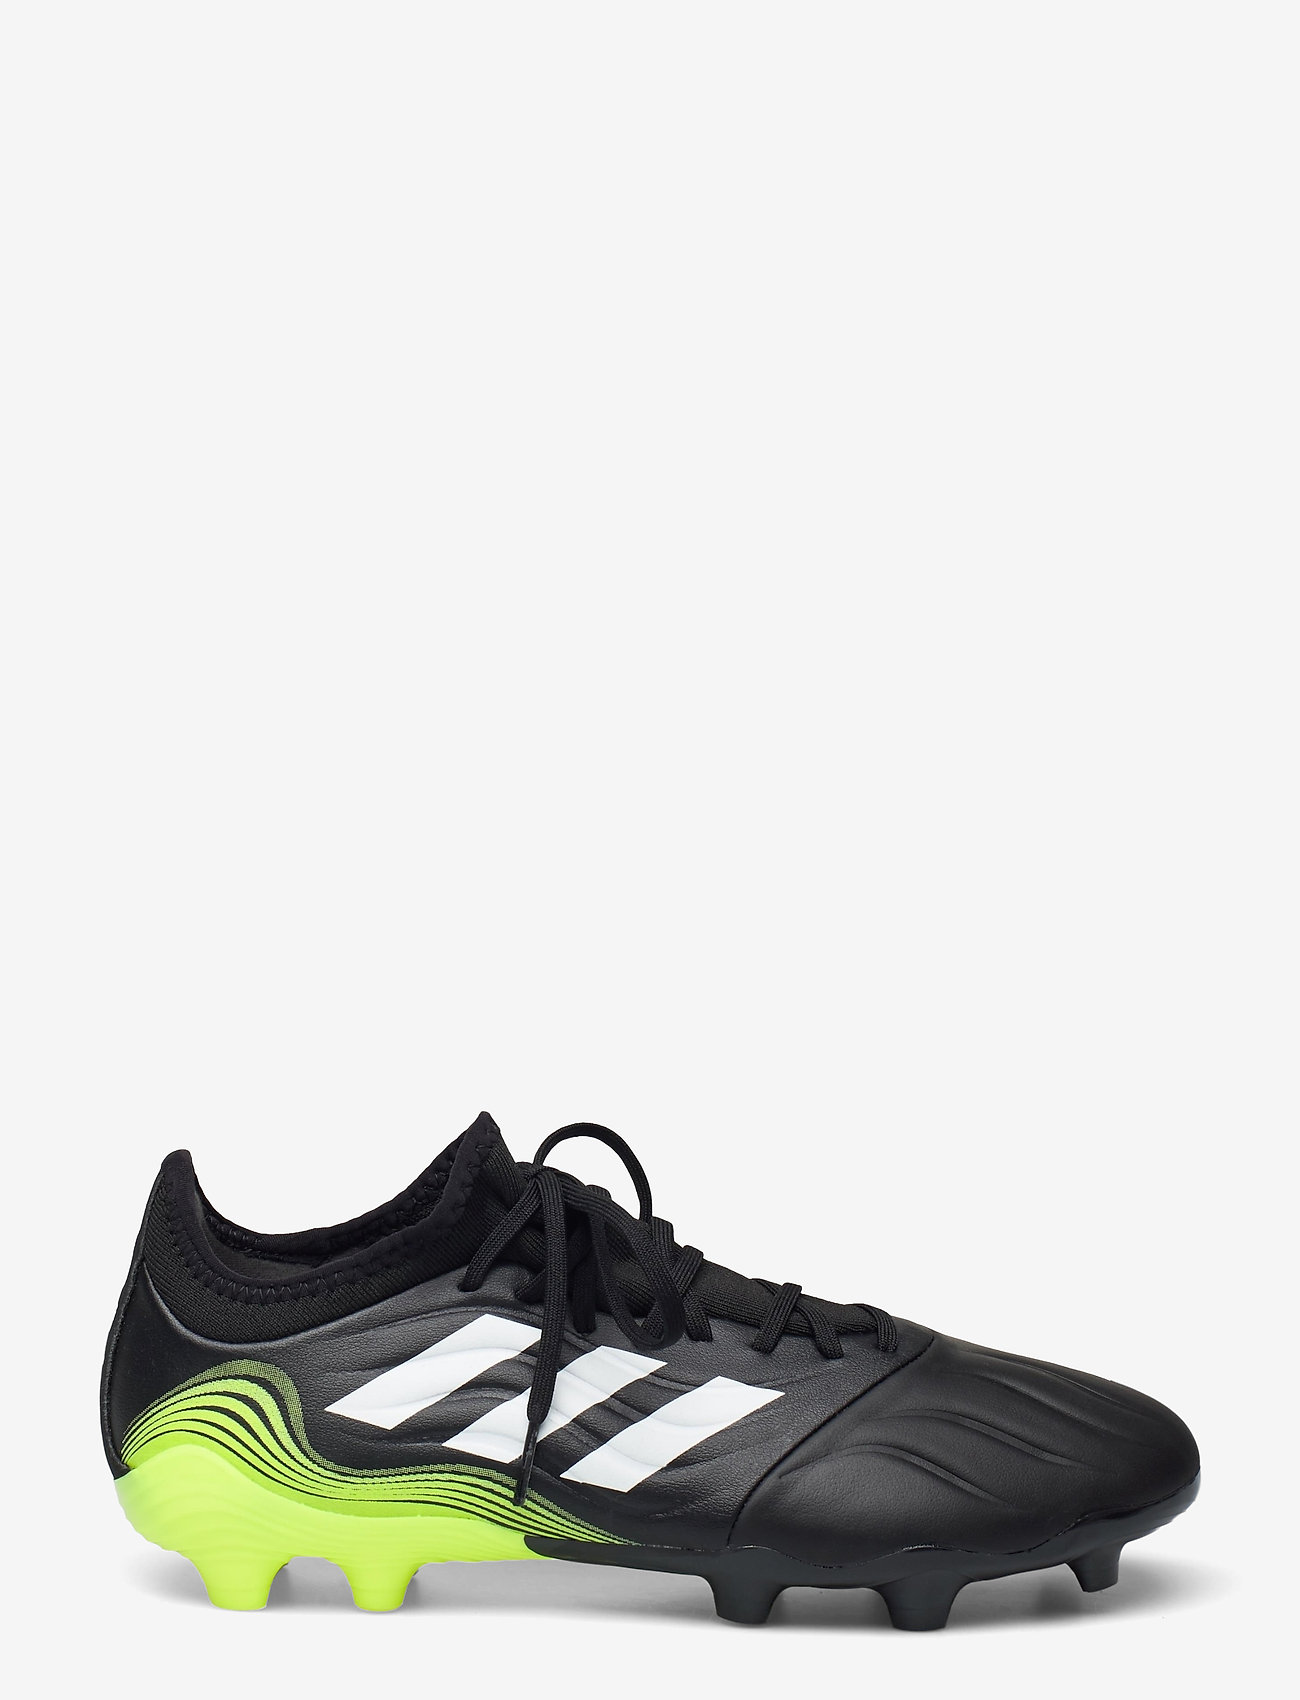 adidas Performance - Copa Sense.3 Firm Ground Boots - fodboldsko - cblack/ftwwht/syello - 1